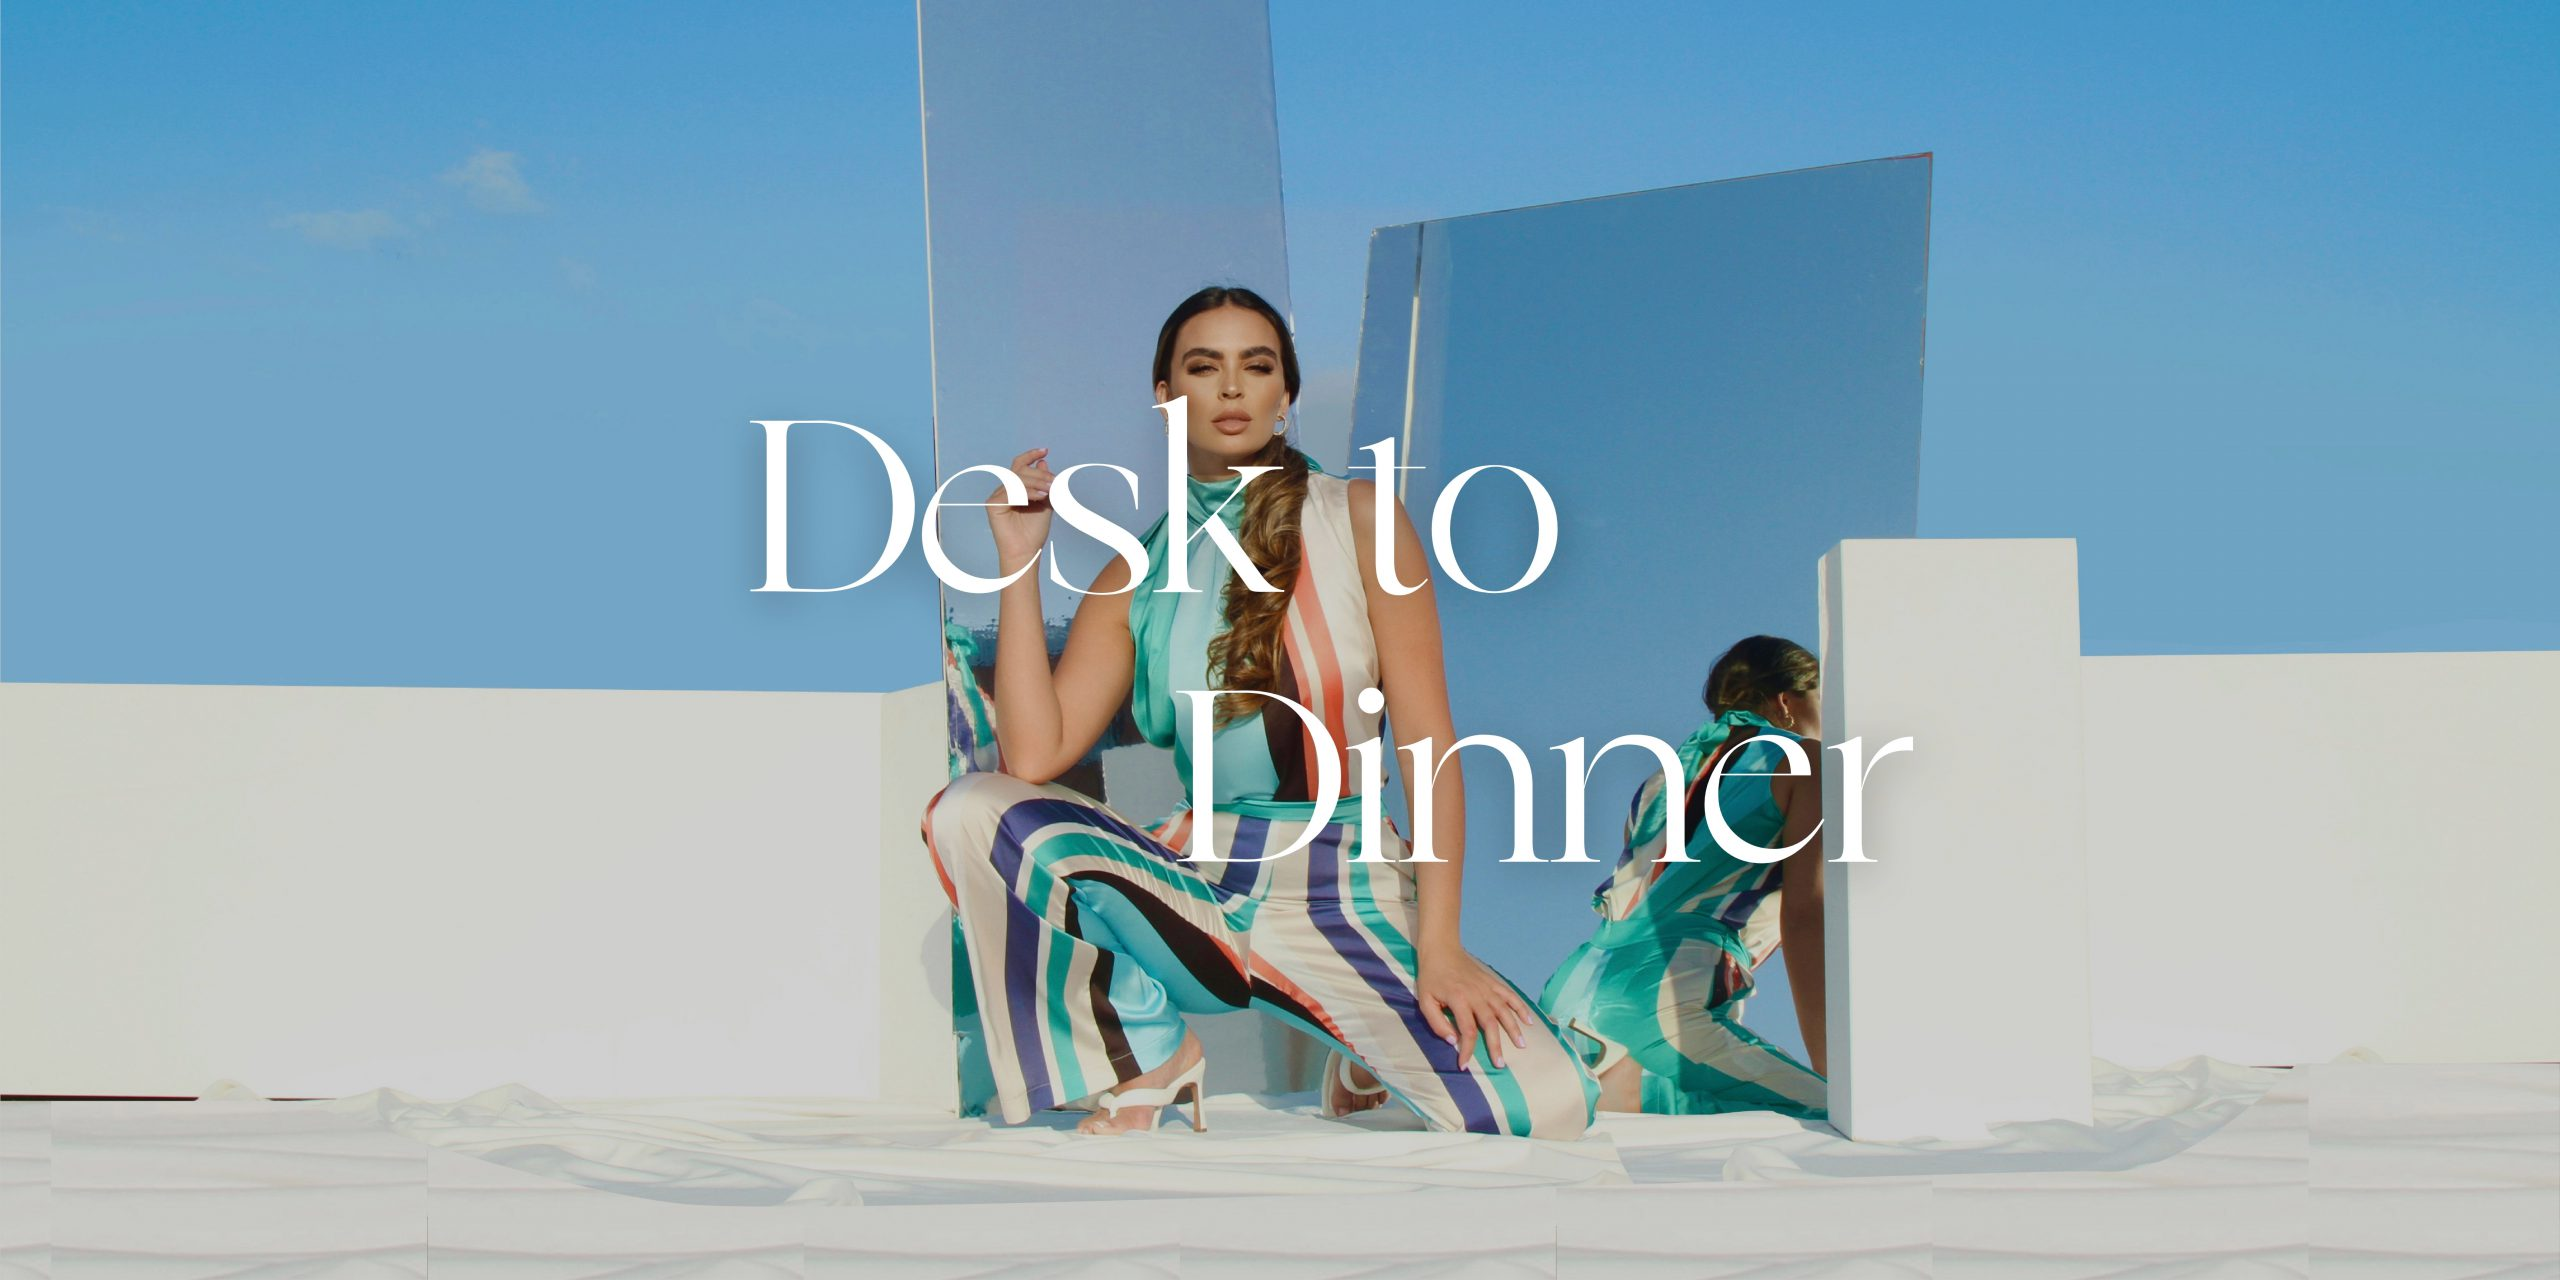 Desk to dinner: our range of day to night dresses